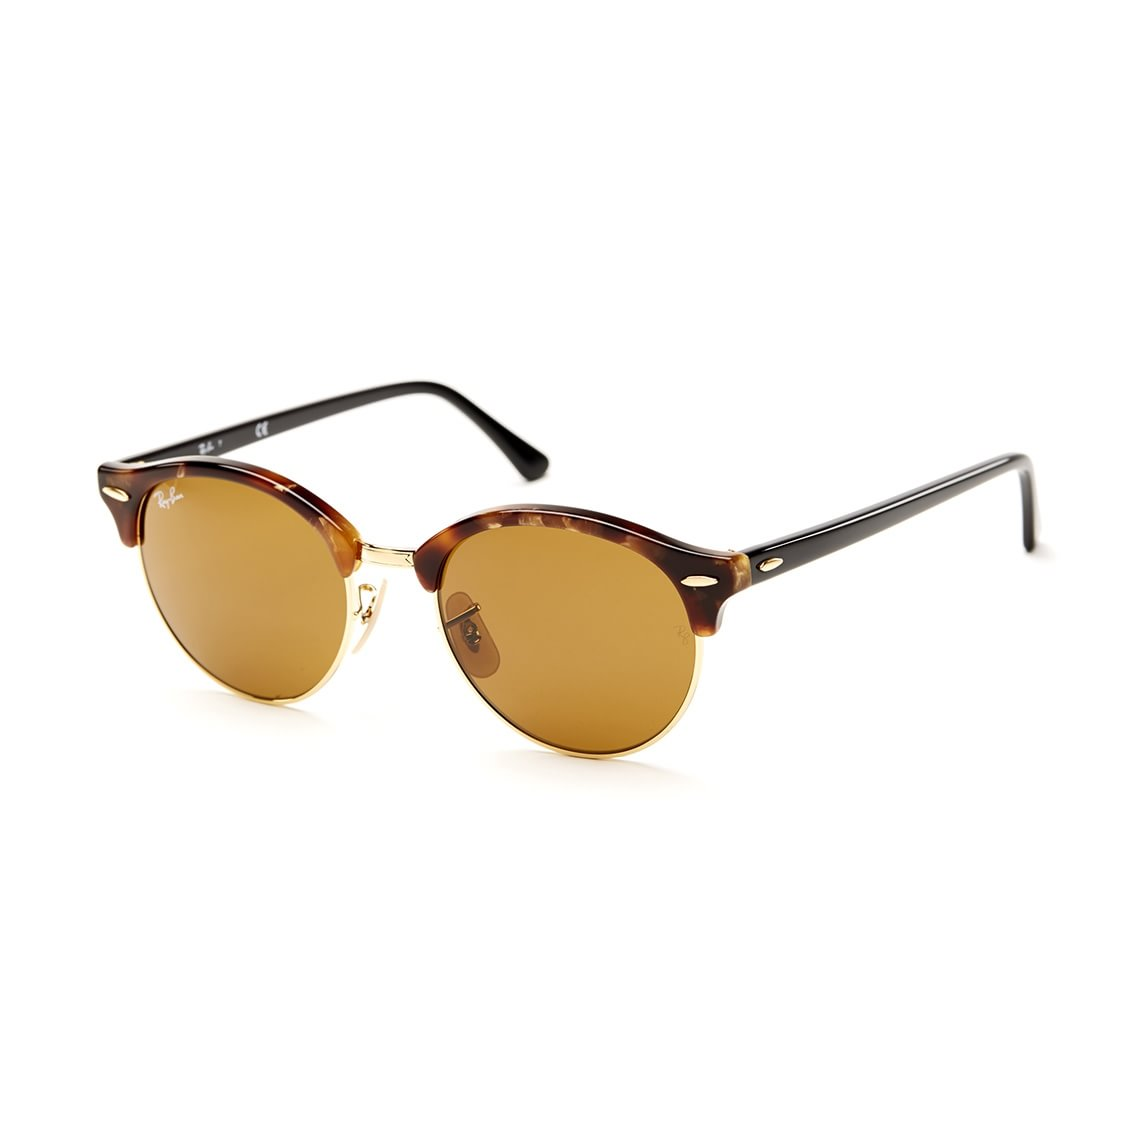 Ray-Ban Clubround RB4246 1160 51